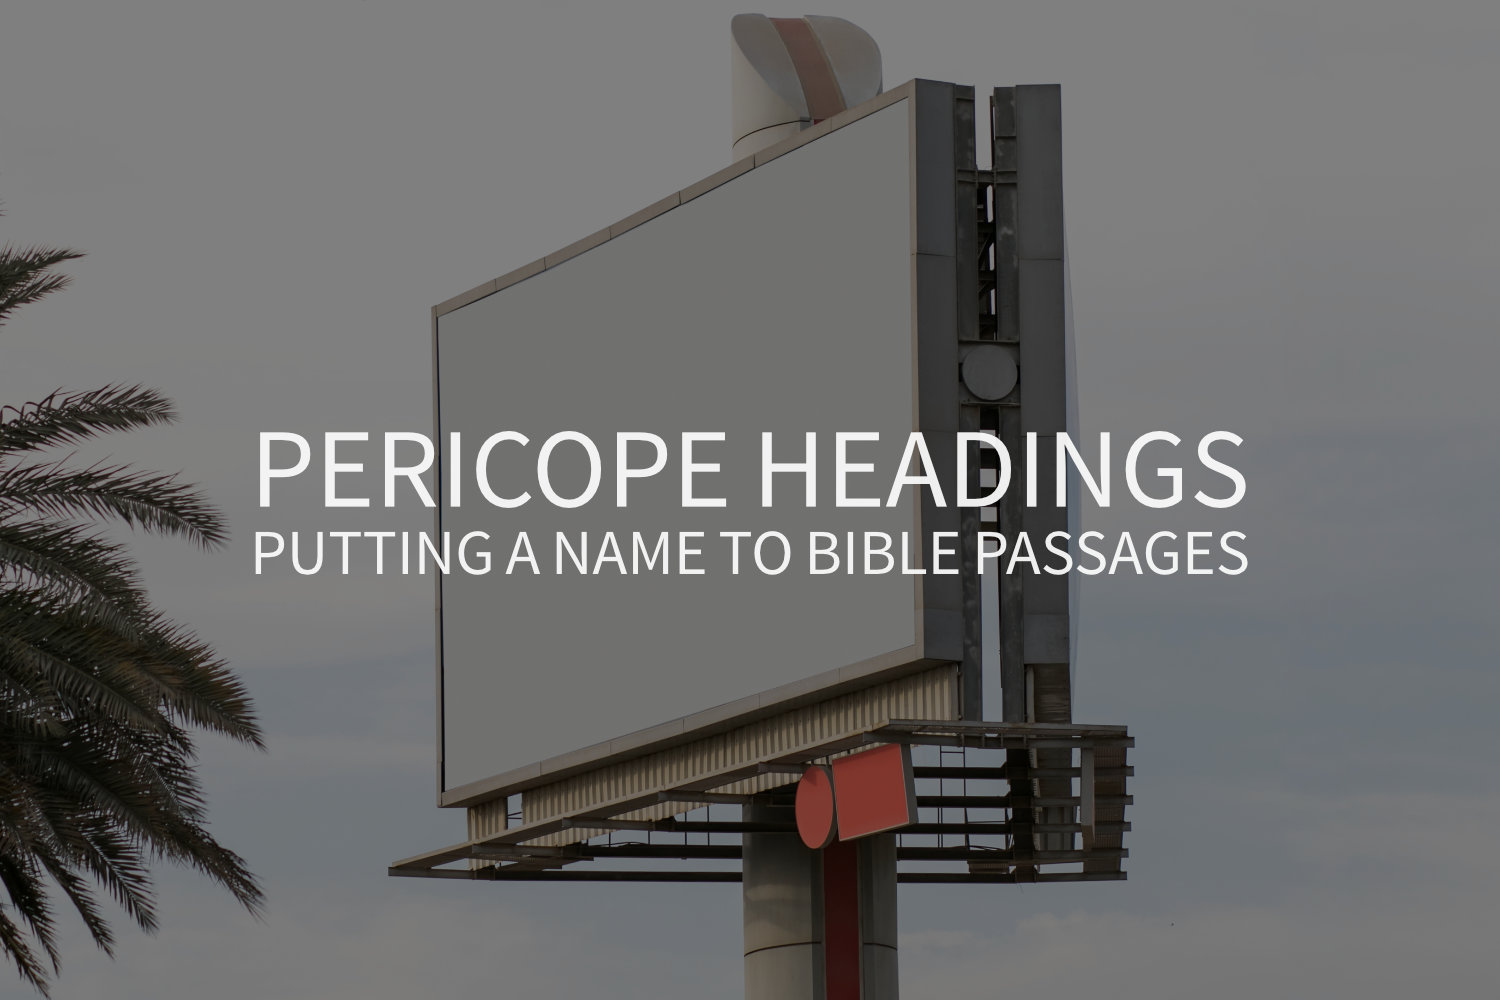 Pericope Headings: Putting a Name to Bible Passages